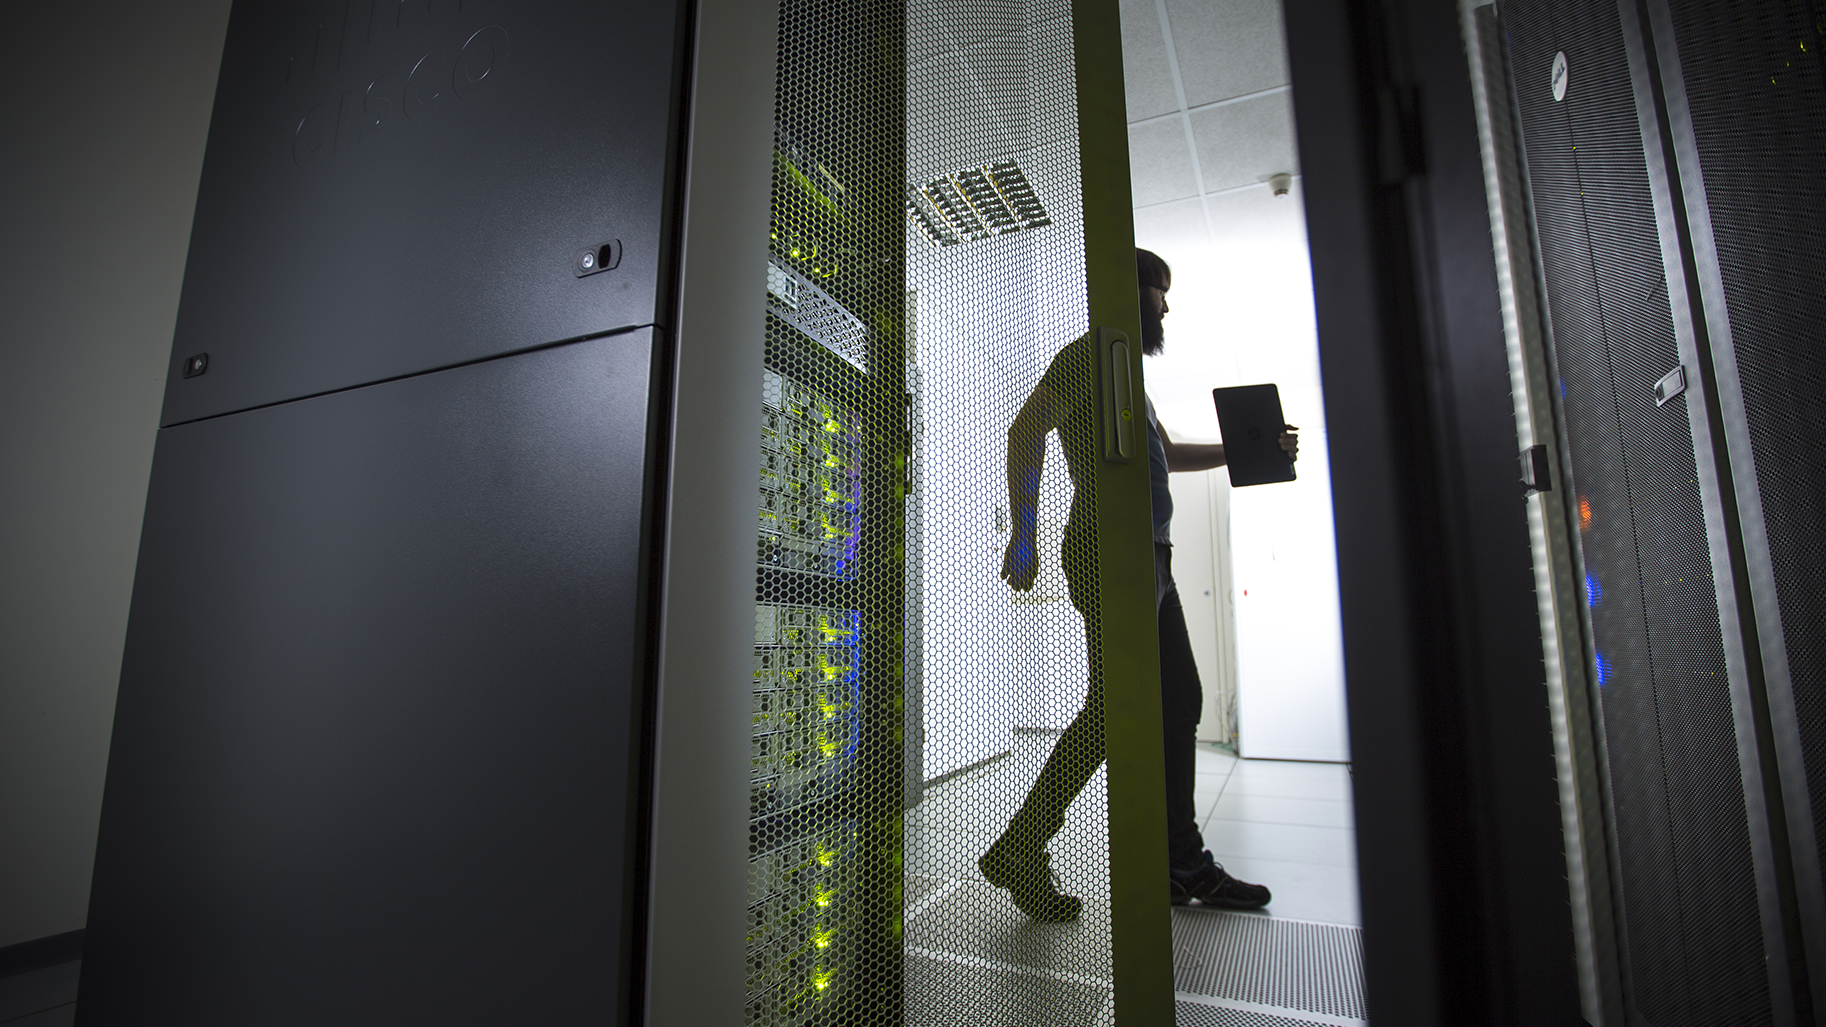 Homme dans un data center